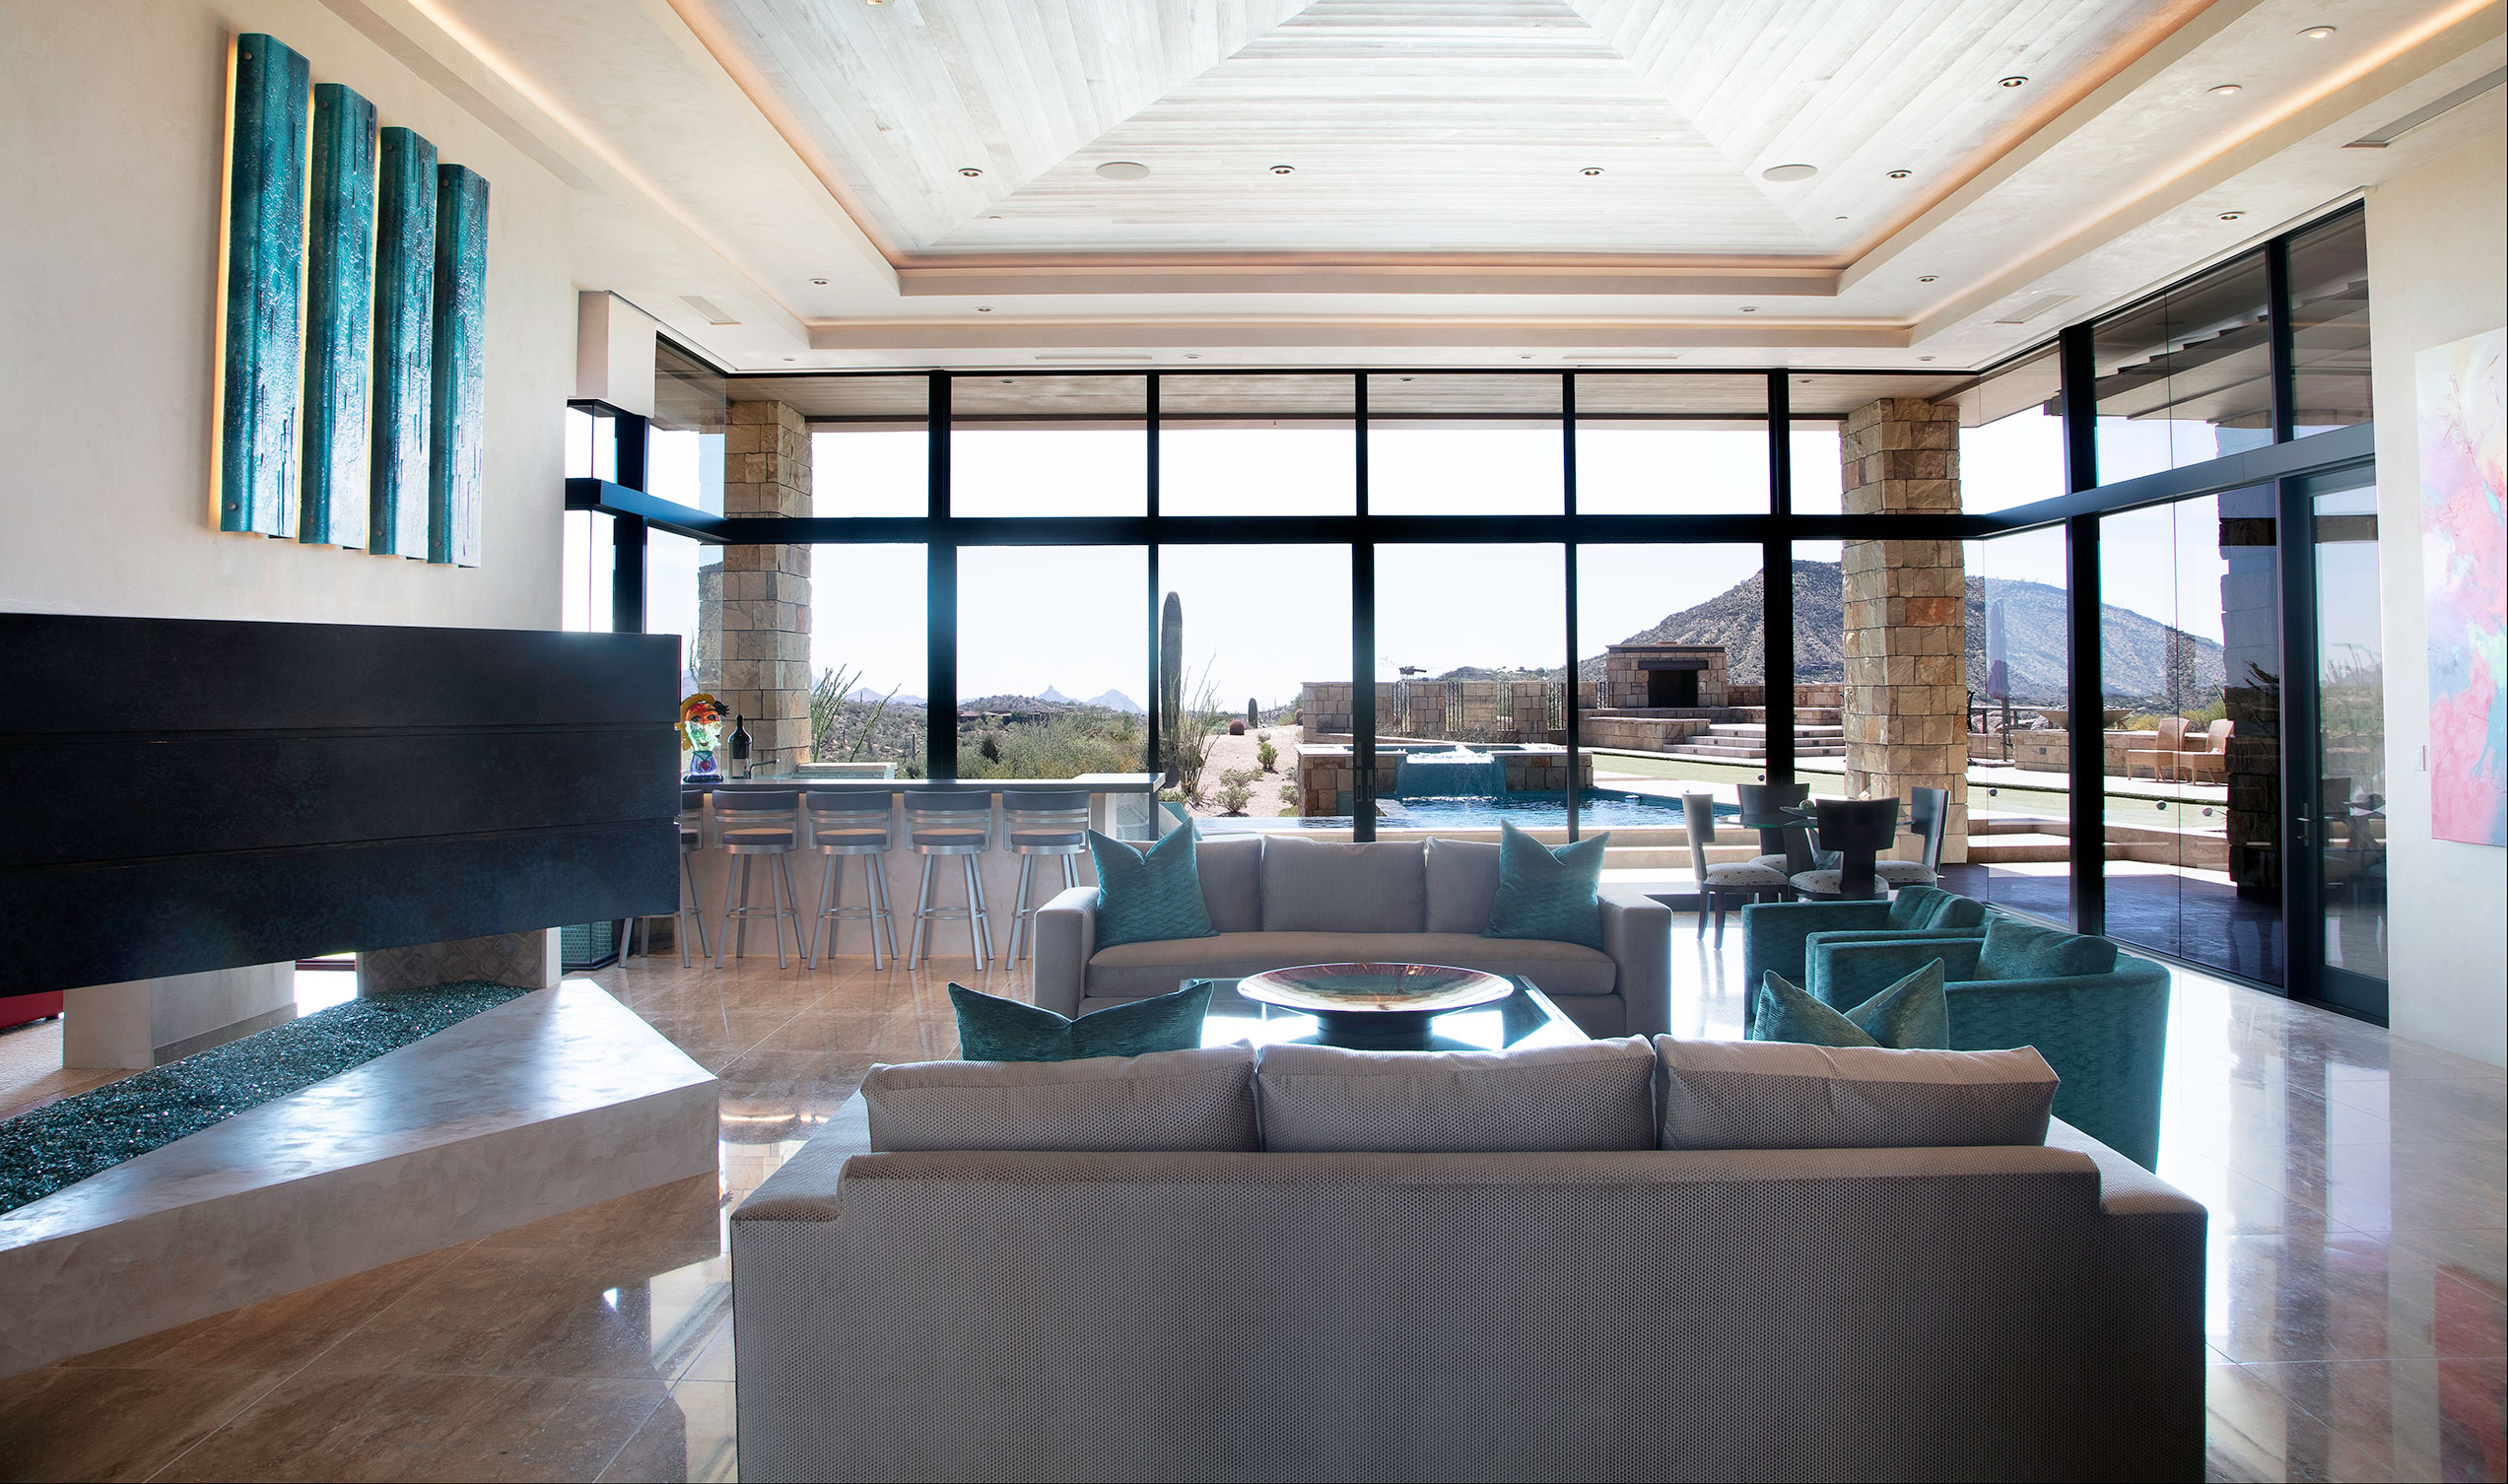 Floor-to-ceiling glass provides panoramic views of the Desert Mountain landscape.